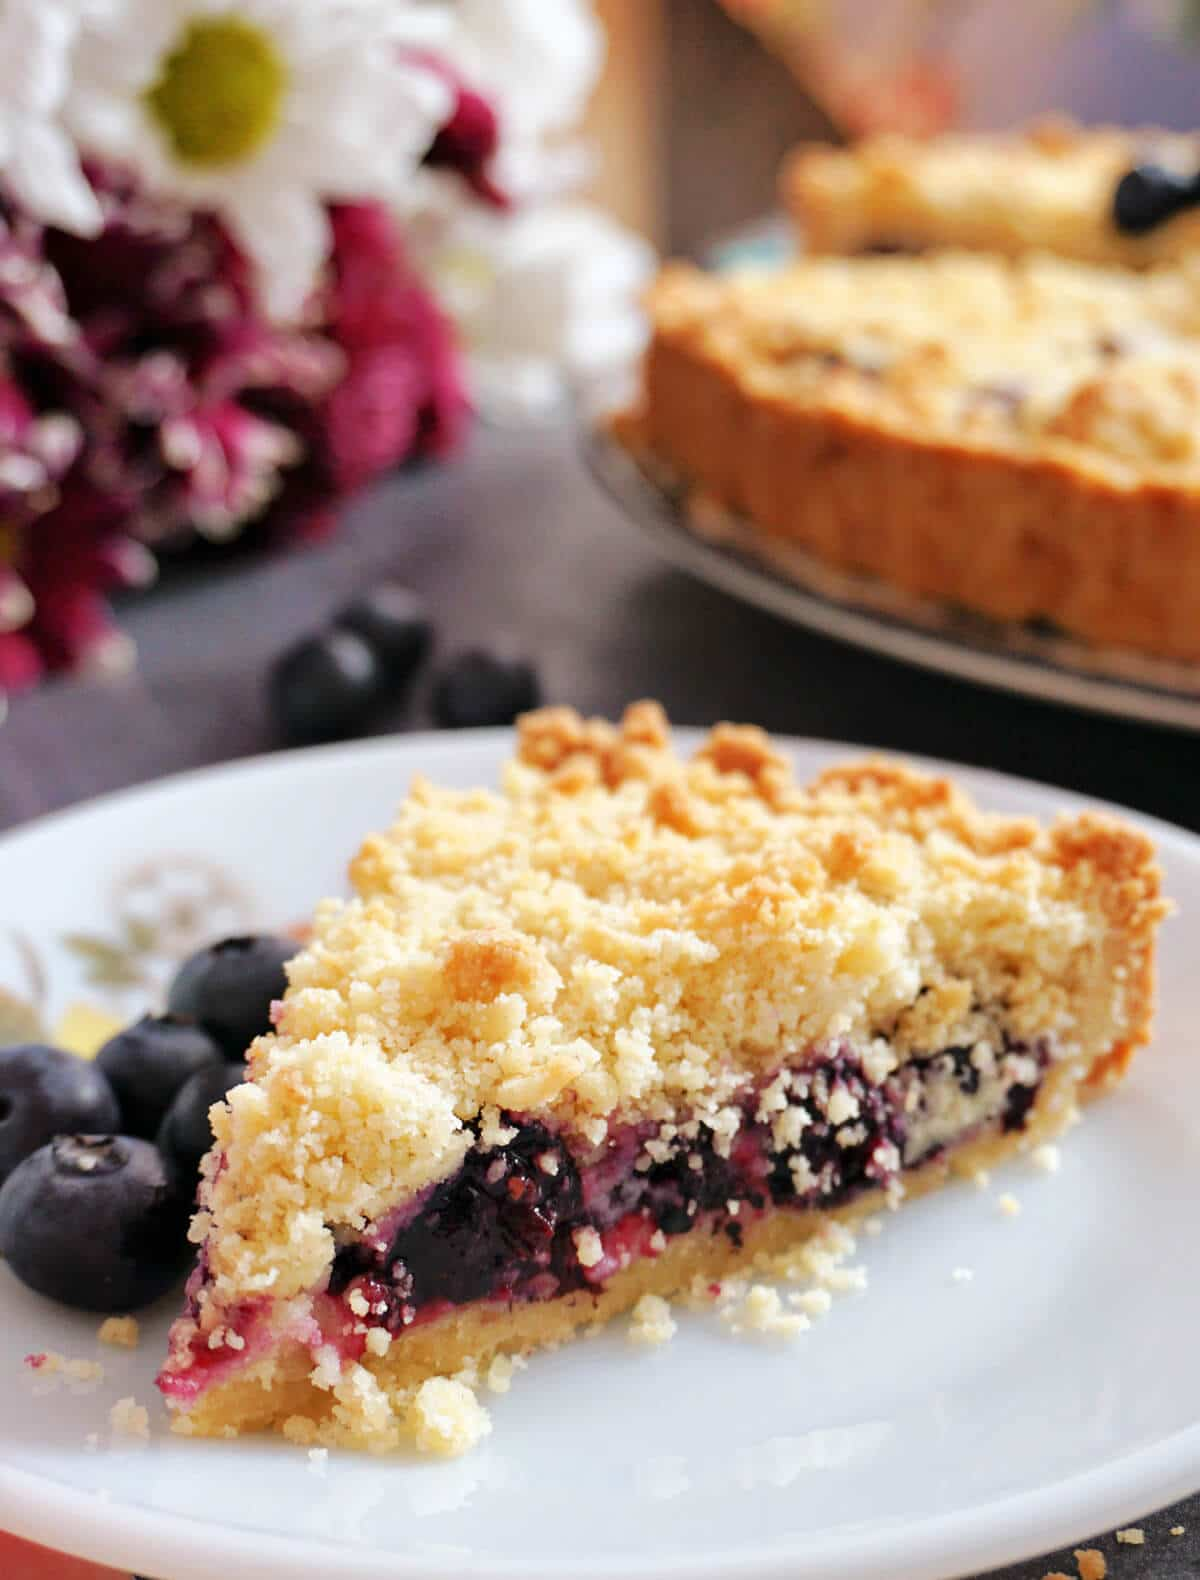 A slice of blueberry pie on a white plate with blueberries around